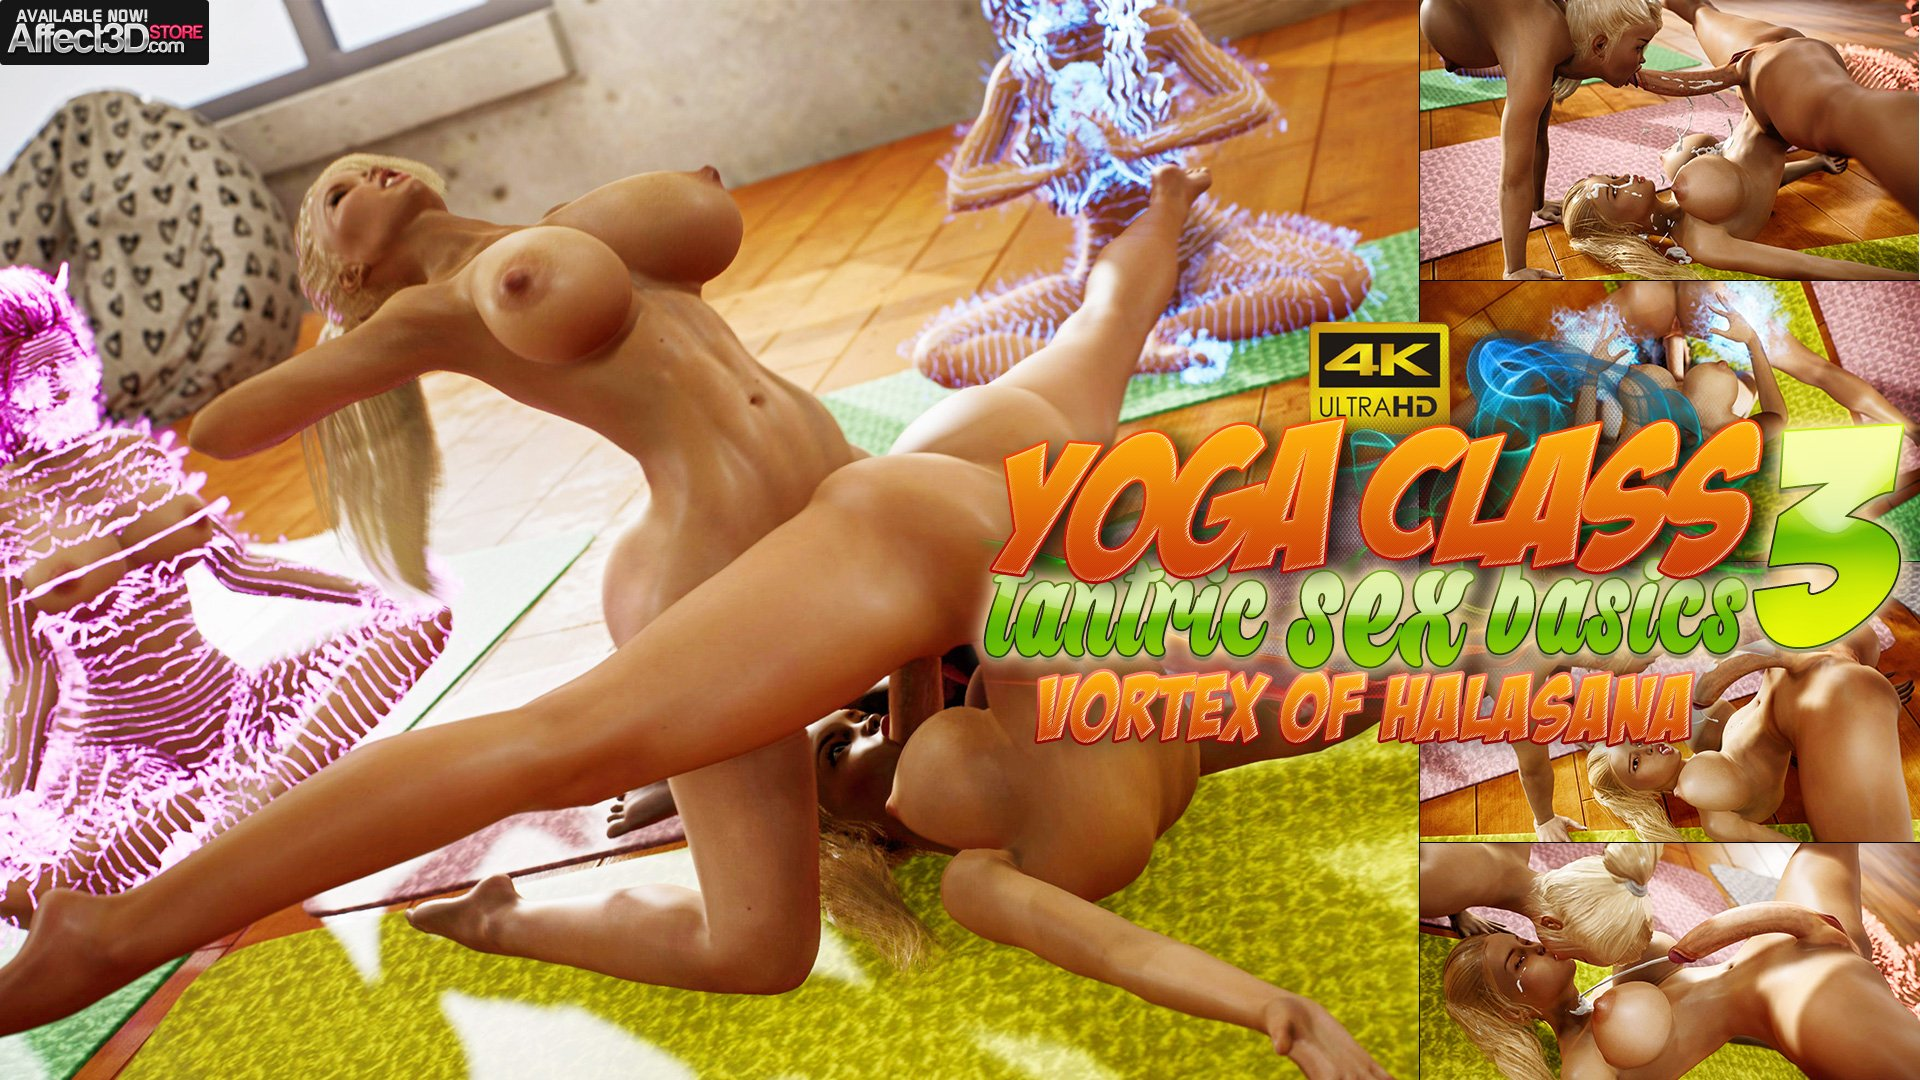 New from Futanarica! Yoga Class – Tantric Sex Basics 3! Watch The Trailer!